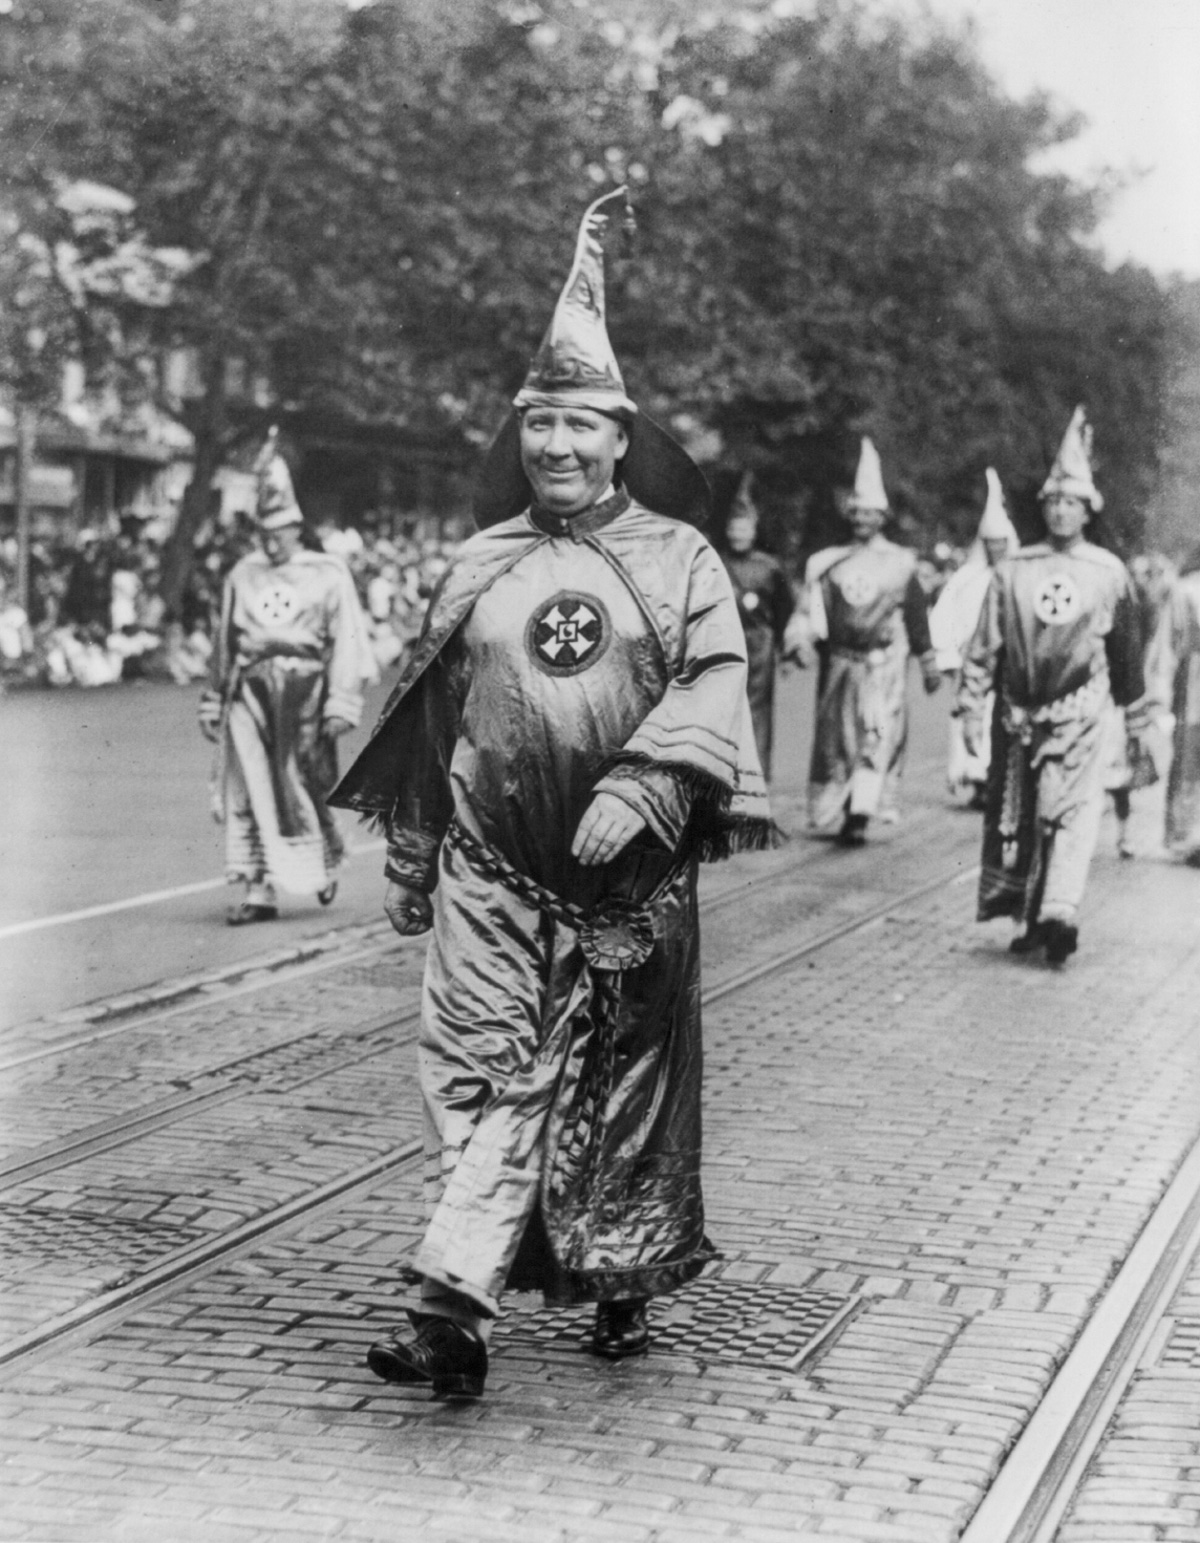 KKK_Washington_1926_003